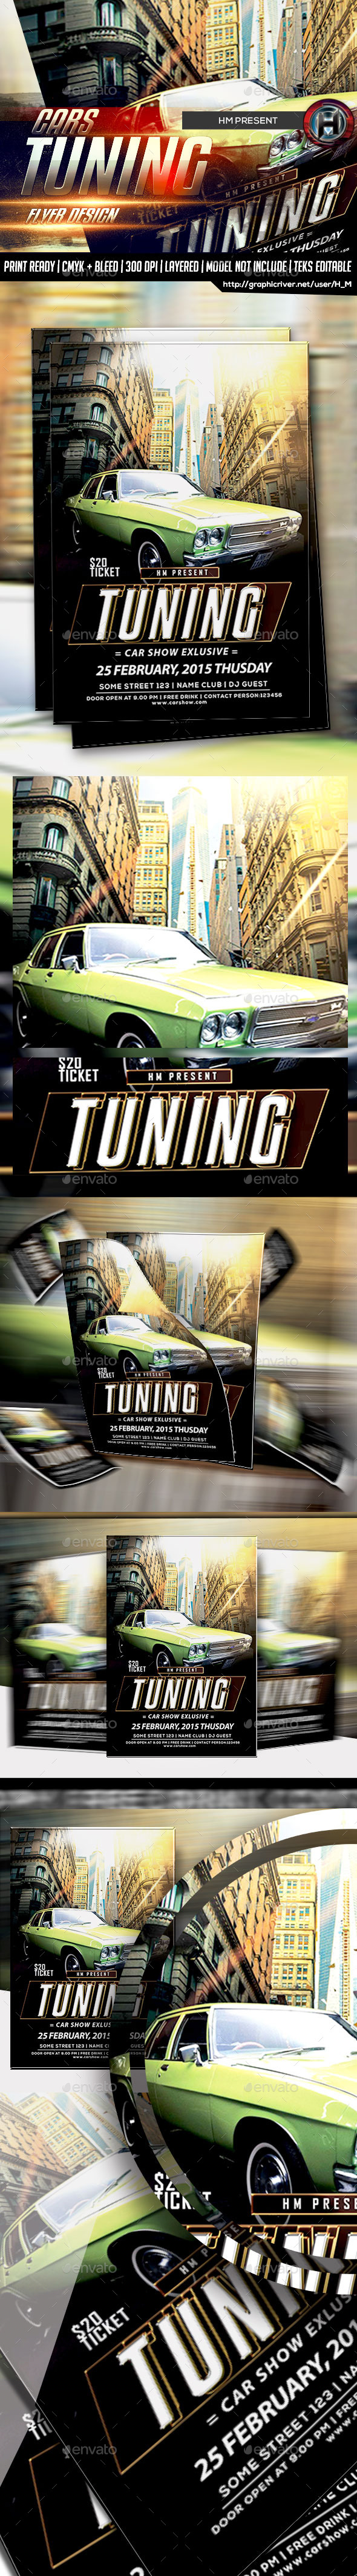 Car Show Tuning Flyer Design - Events Flyers